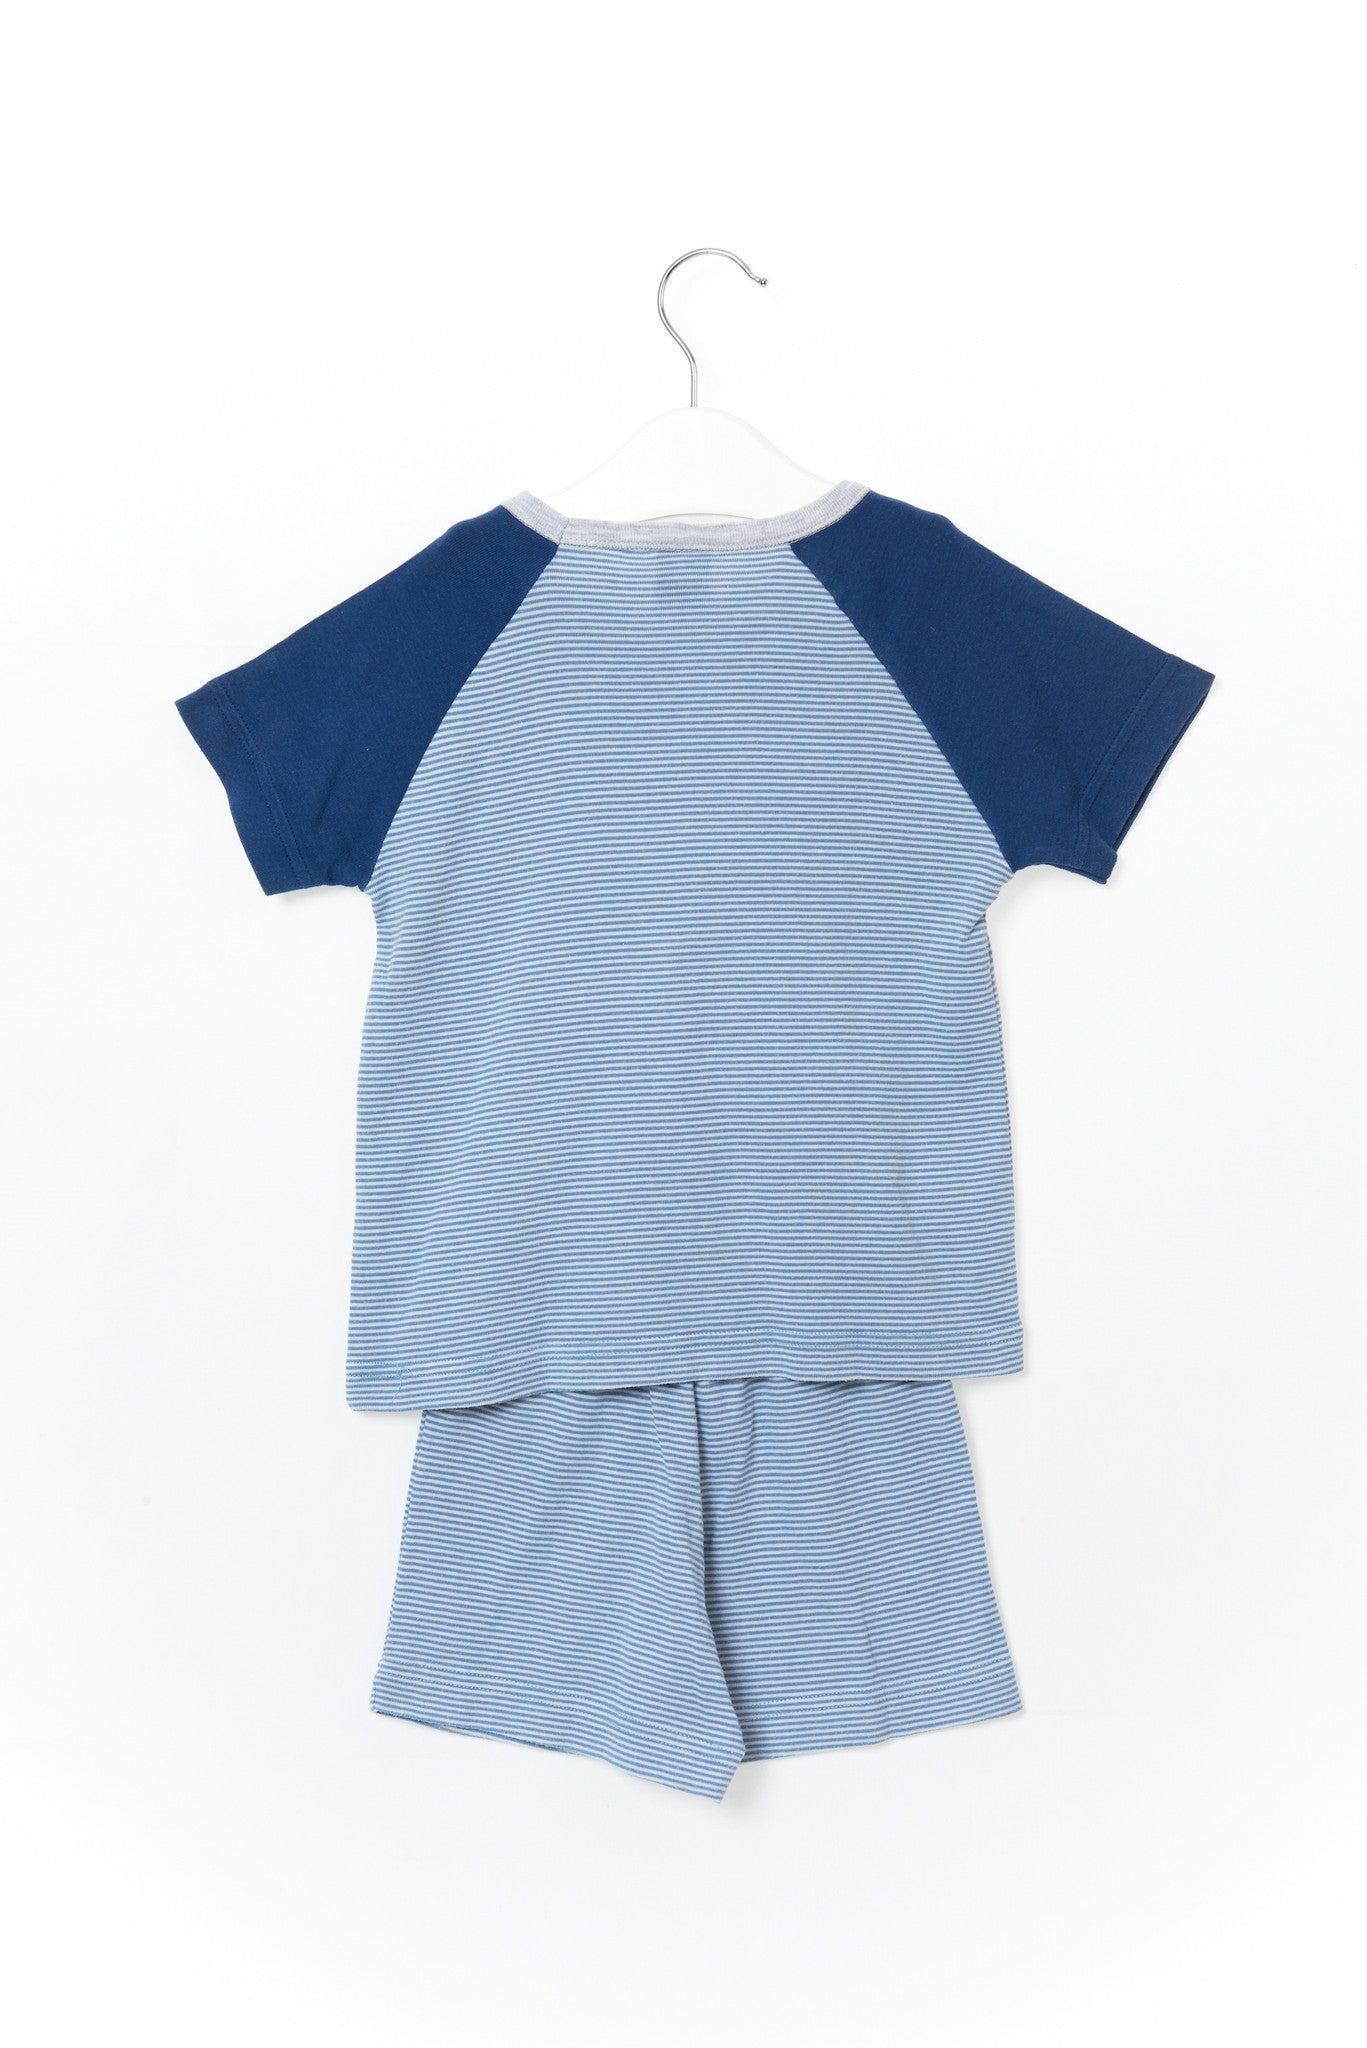 10001241 Petit Bateau Kids~Top and Shorts 3T at Retykle